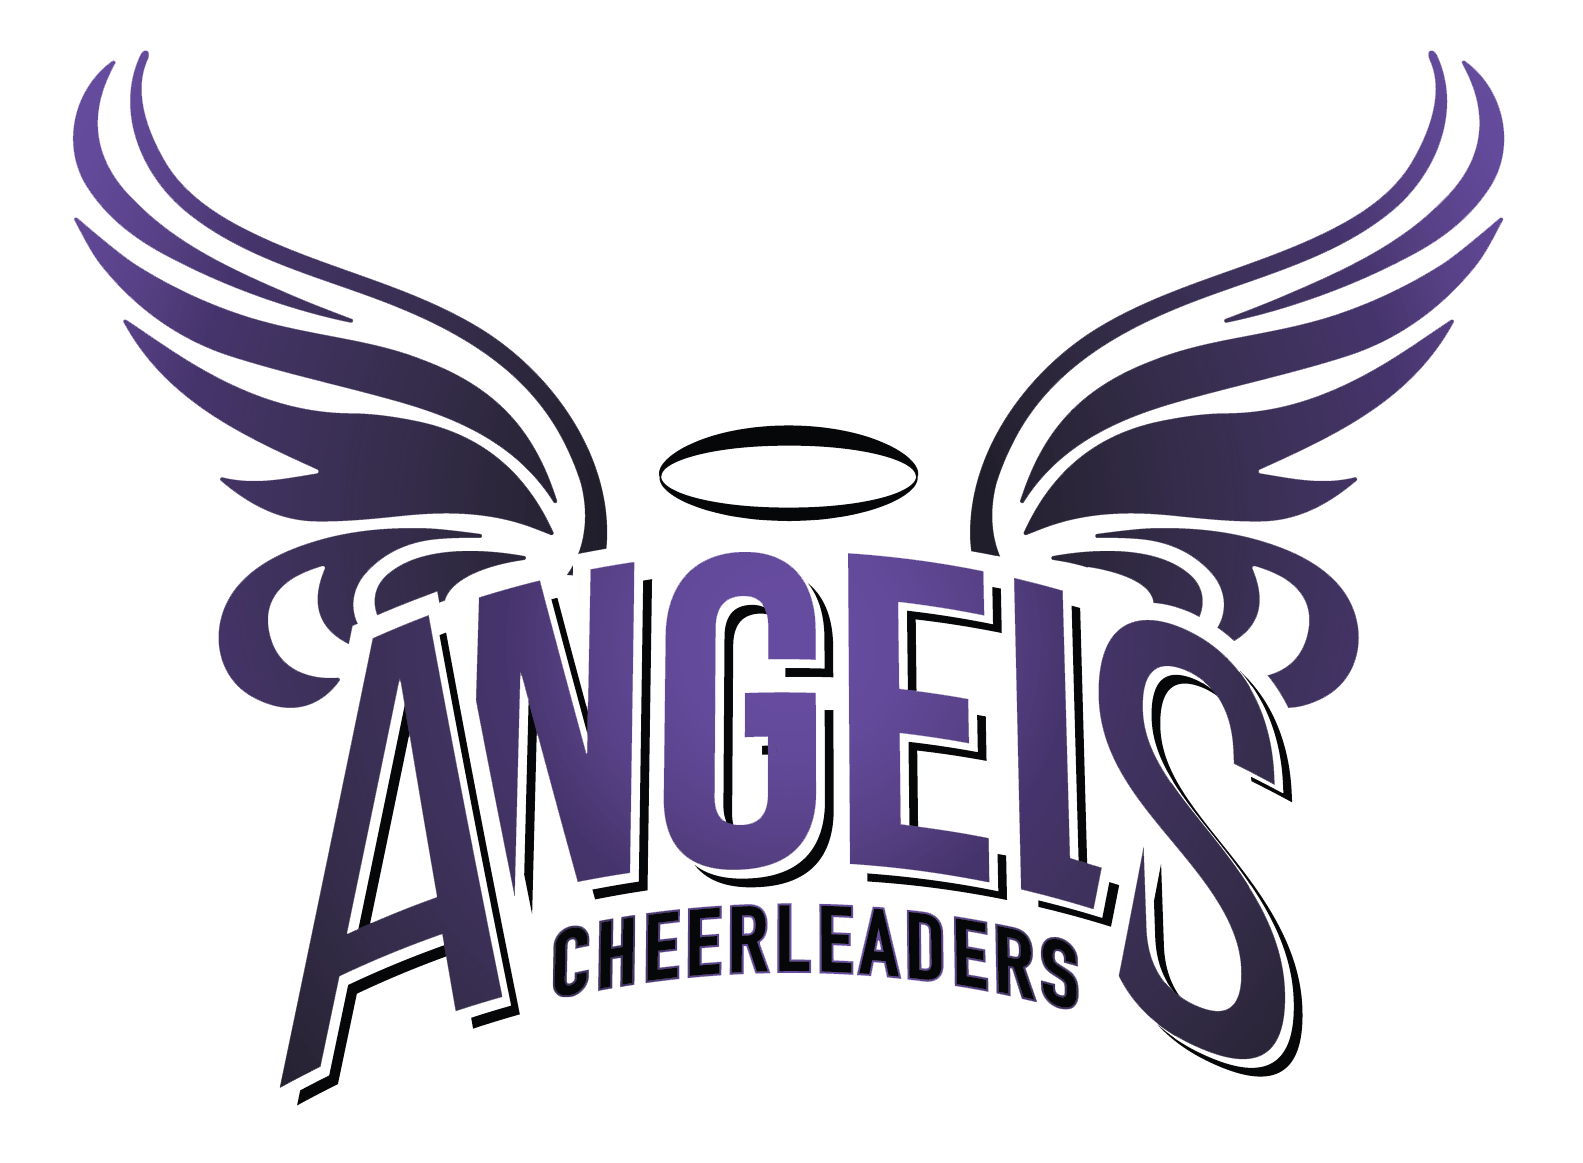 Lausanne Angels Cheerleaders Mobile Logo